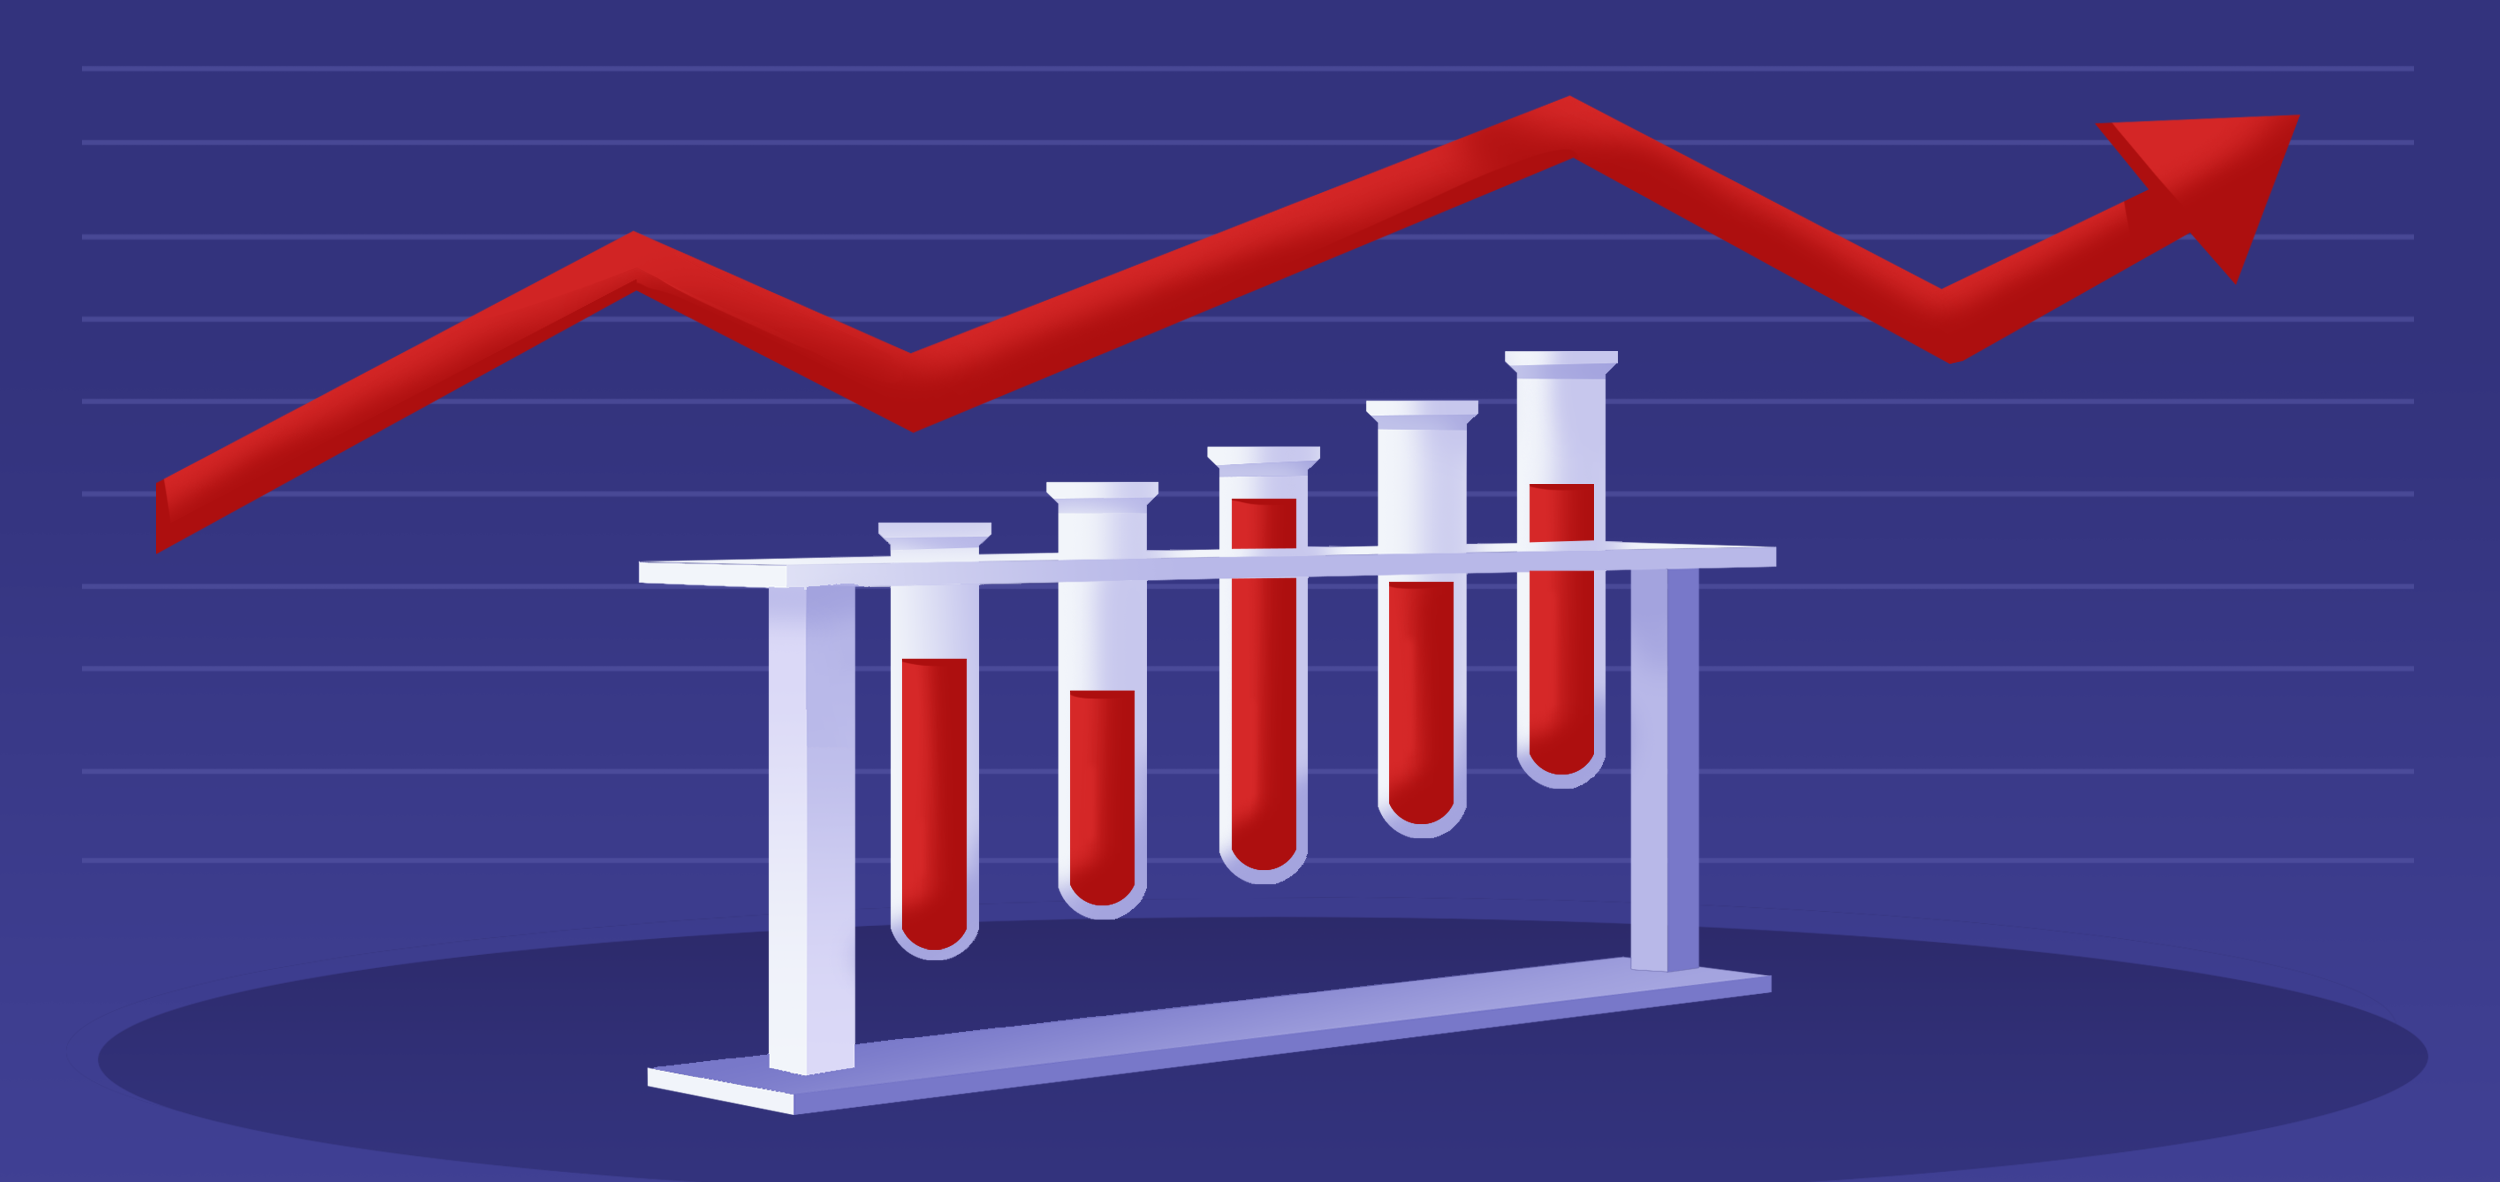 A stylized illustration of test tubes in front of a red line on a chart going up and to the right.